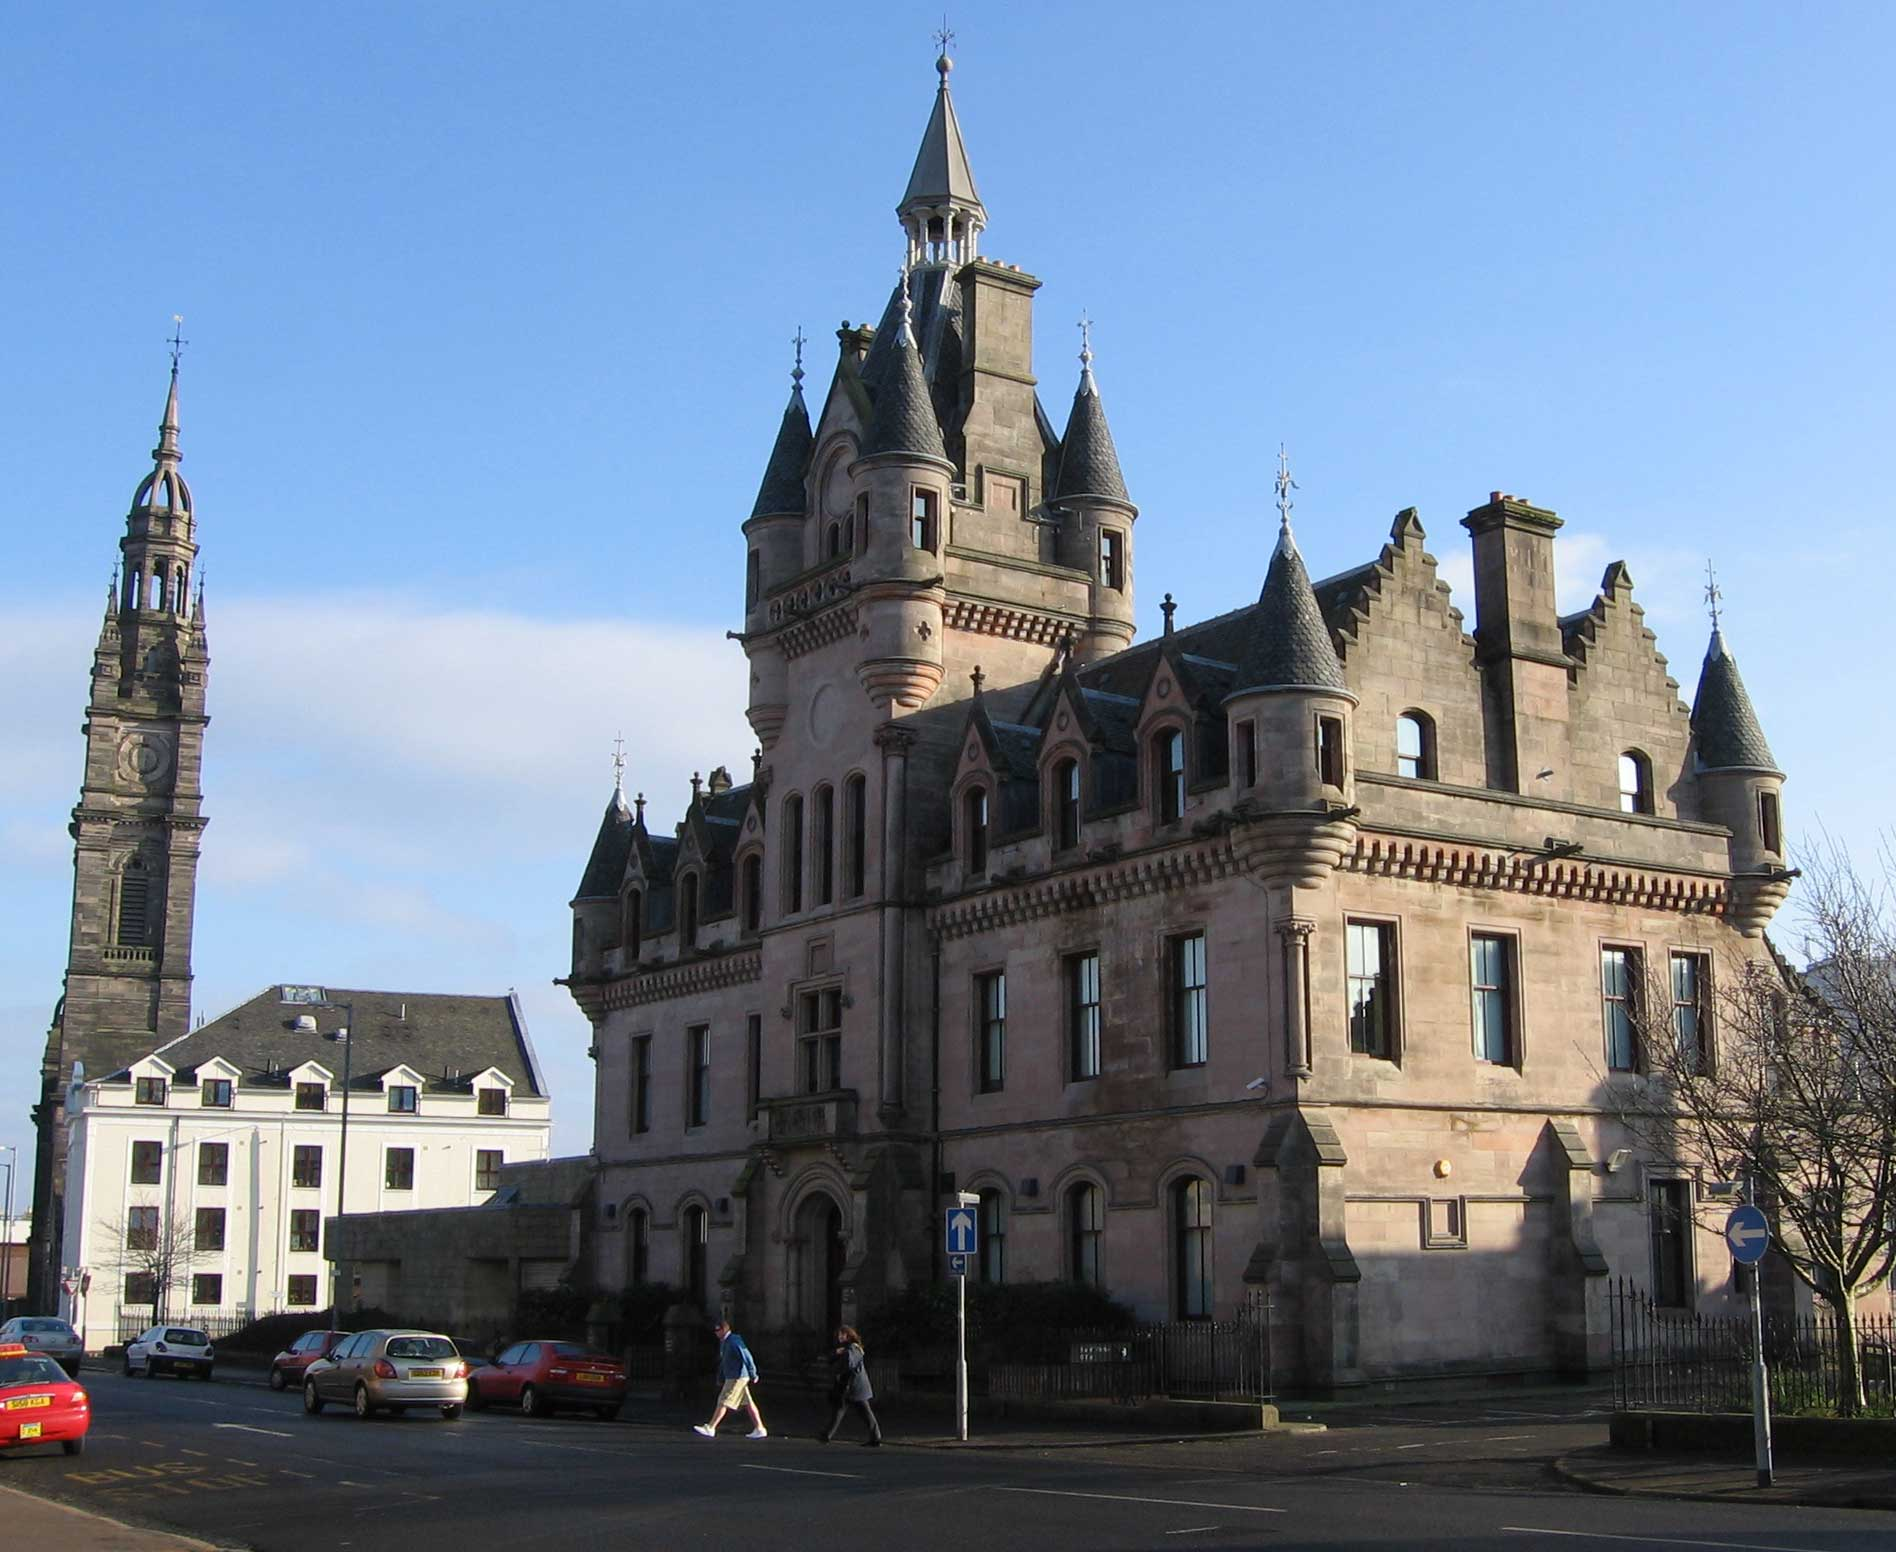 Scottish baronial architecture - Wikipedia